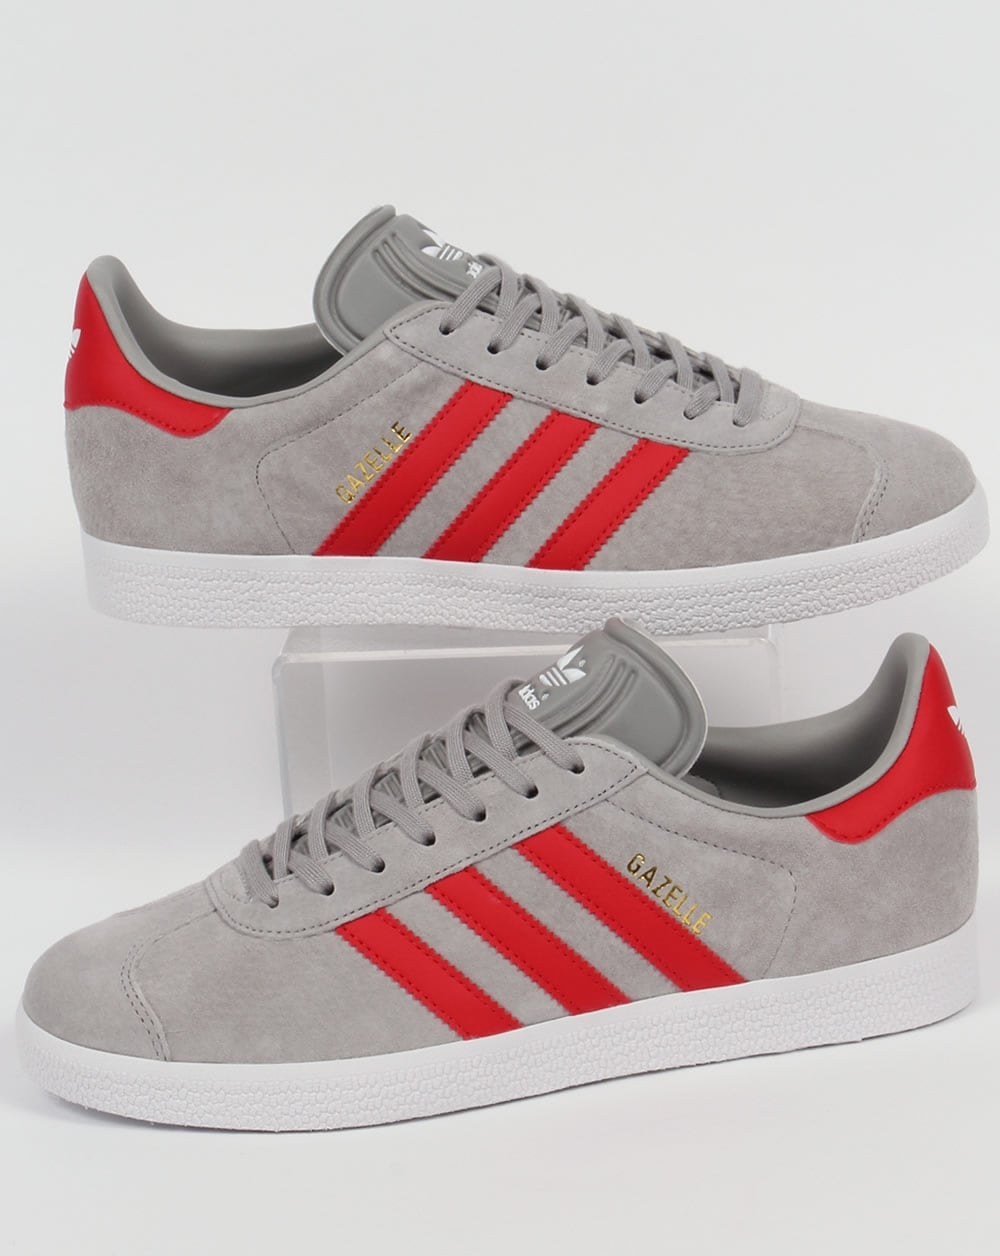 Adidas Gazelle Trainers Solid Grey/Red